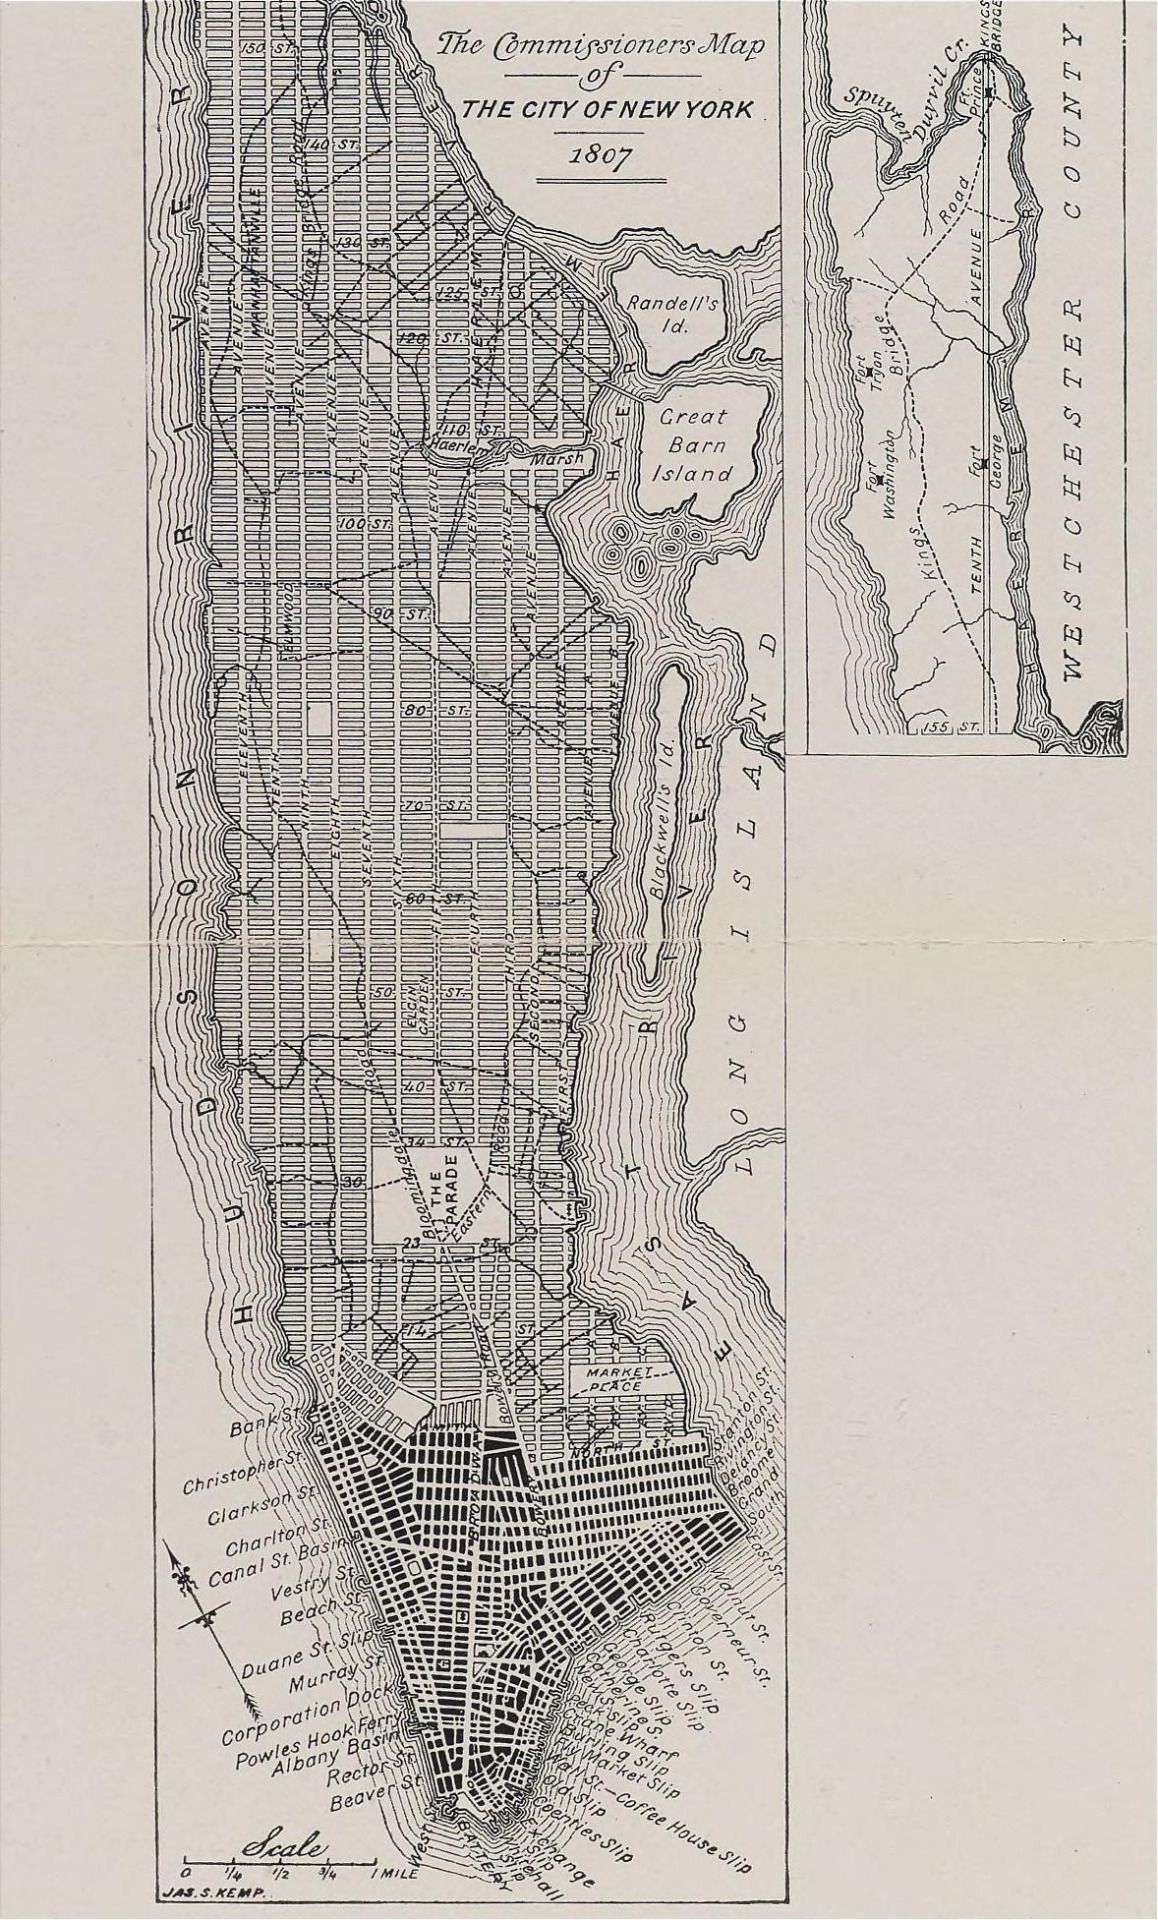 The missioners Plan of the City of New York in 1807